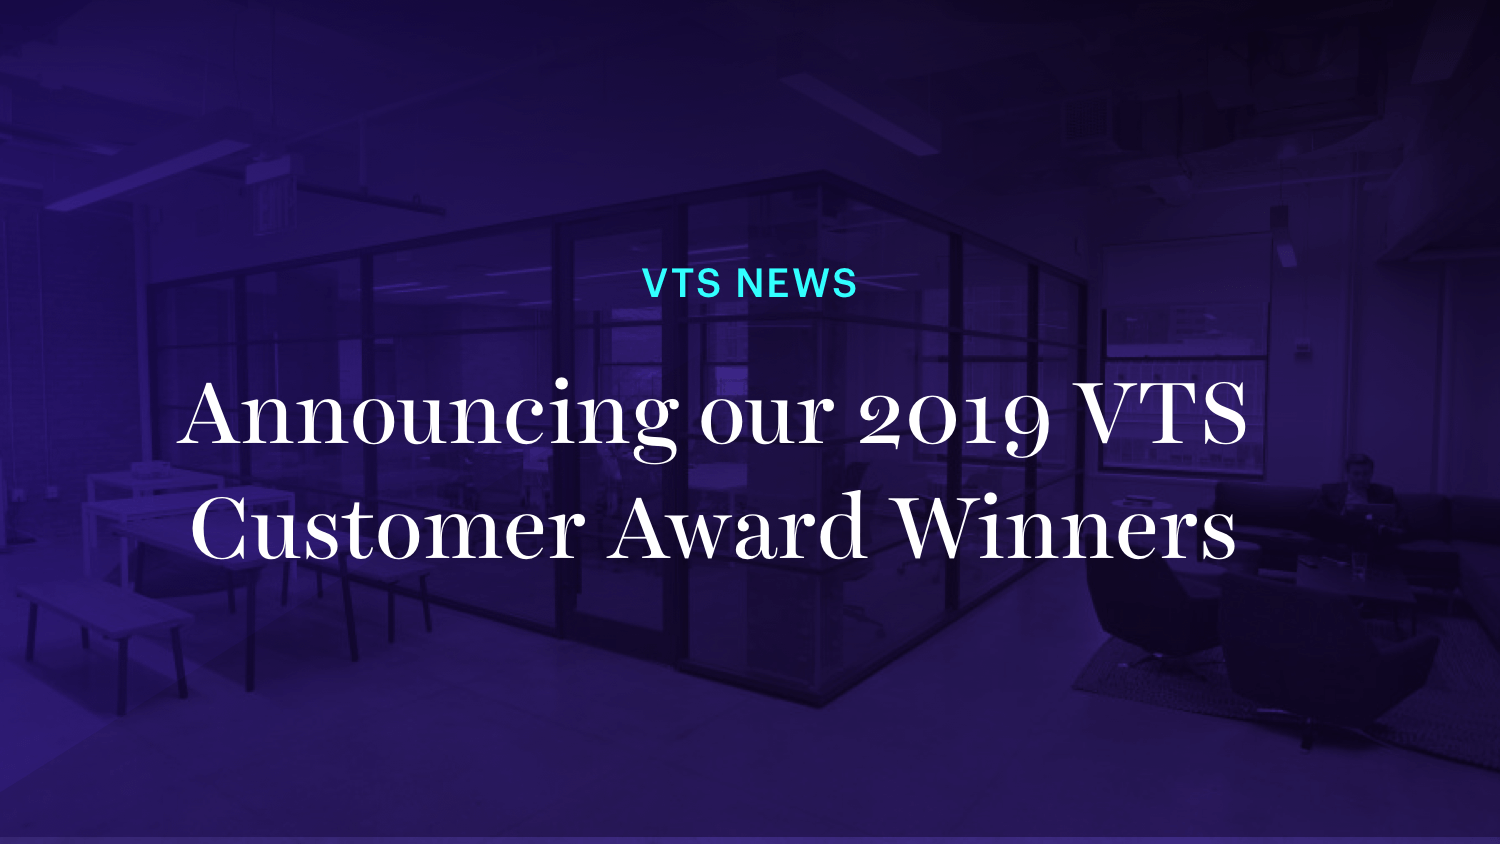 Announcing our 2019 VTS Customer Award Winners